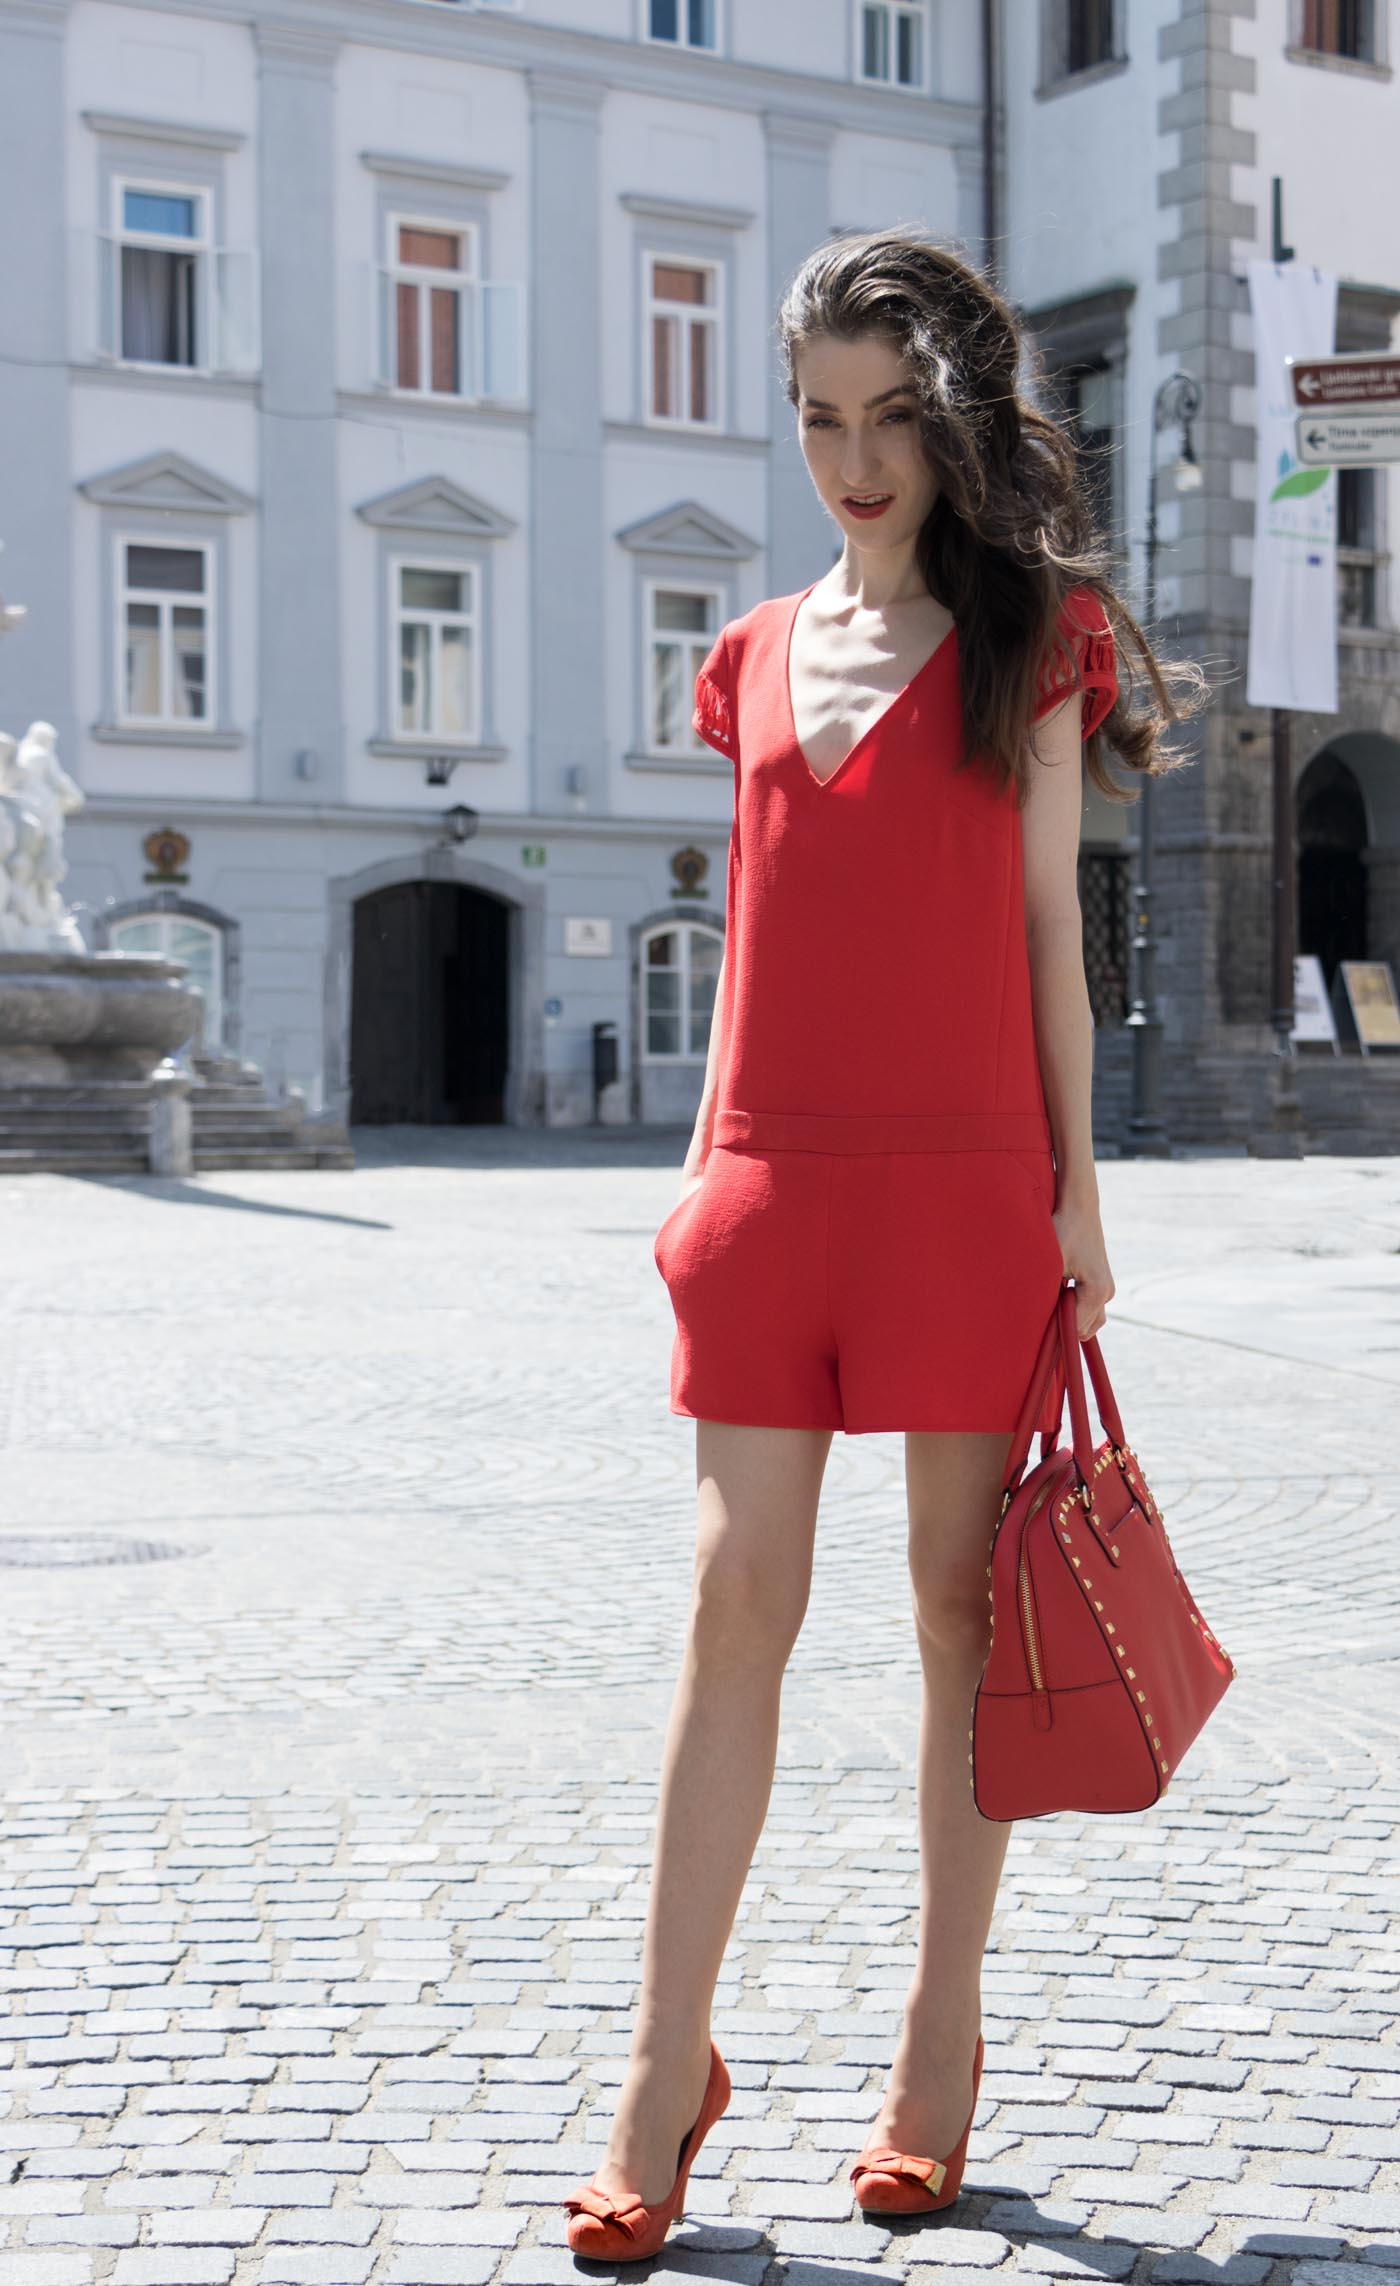 Fashion Blogger Veronika Lipar of Brunette from Wall Street wearing red romper with the open back, red heels and red Michael Kors tote bag